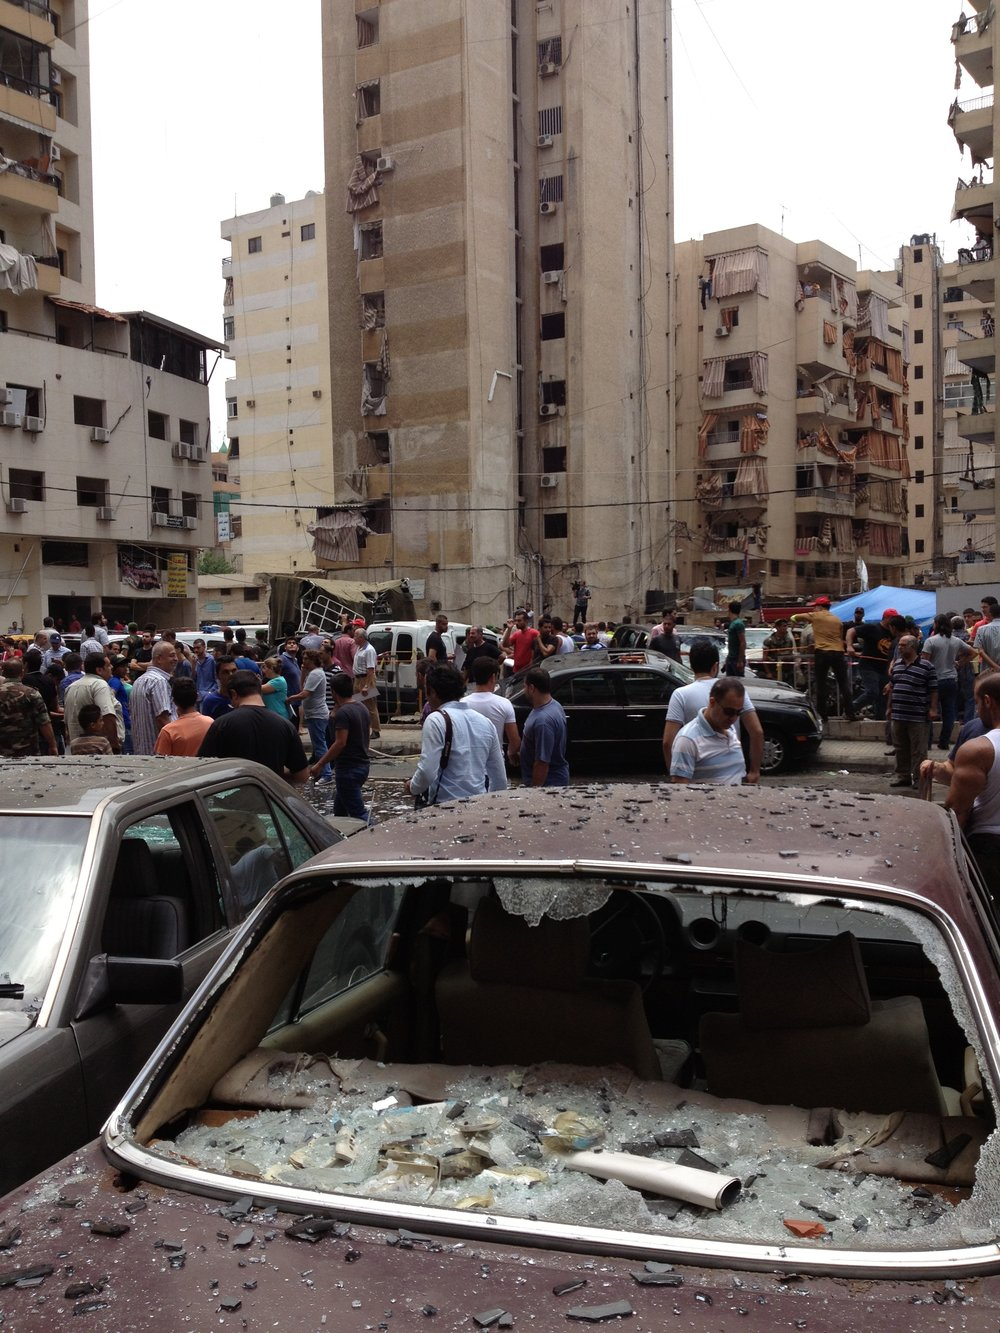 The immediate aftermath of a car bombing in Beirut, Lebanon.